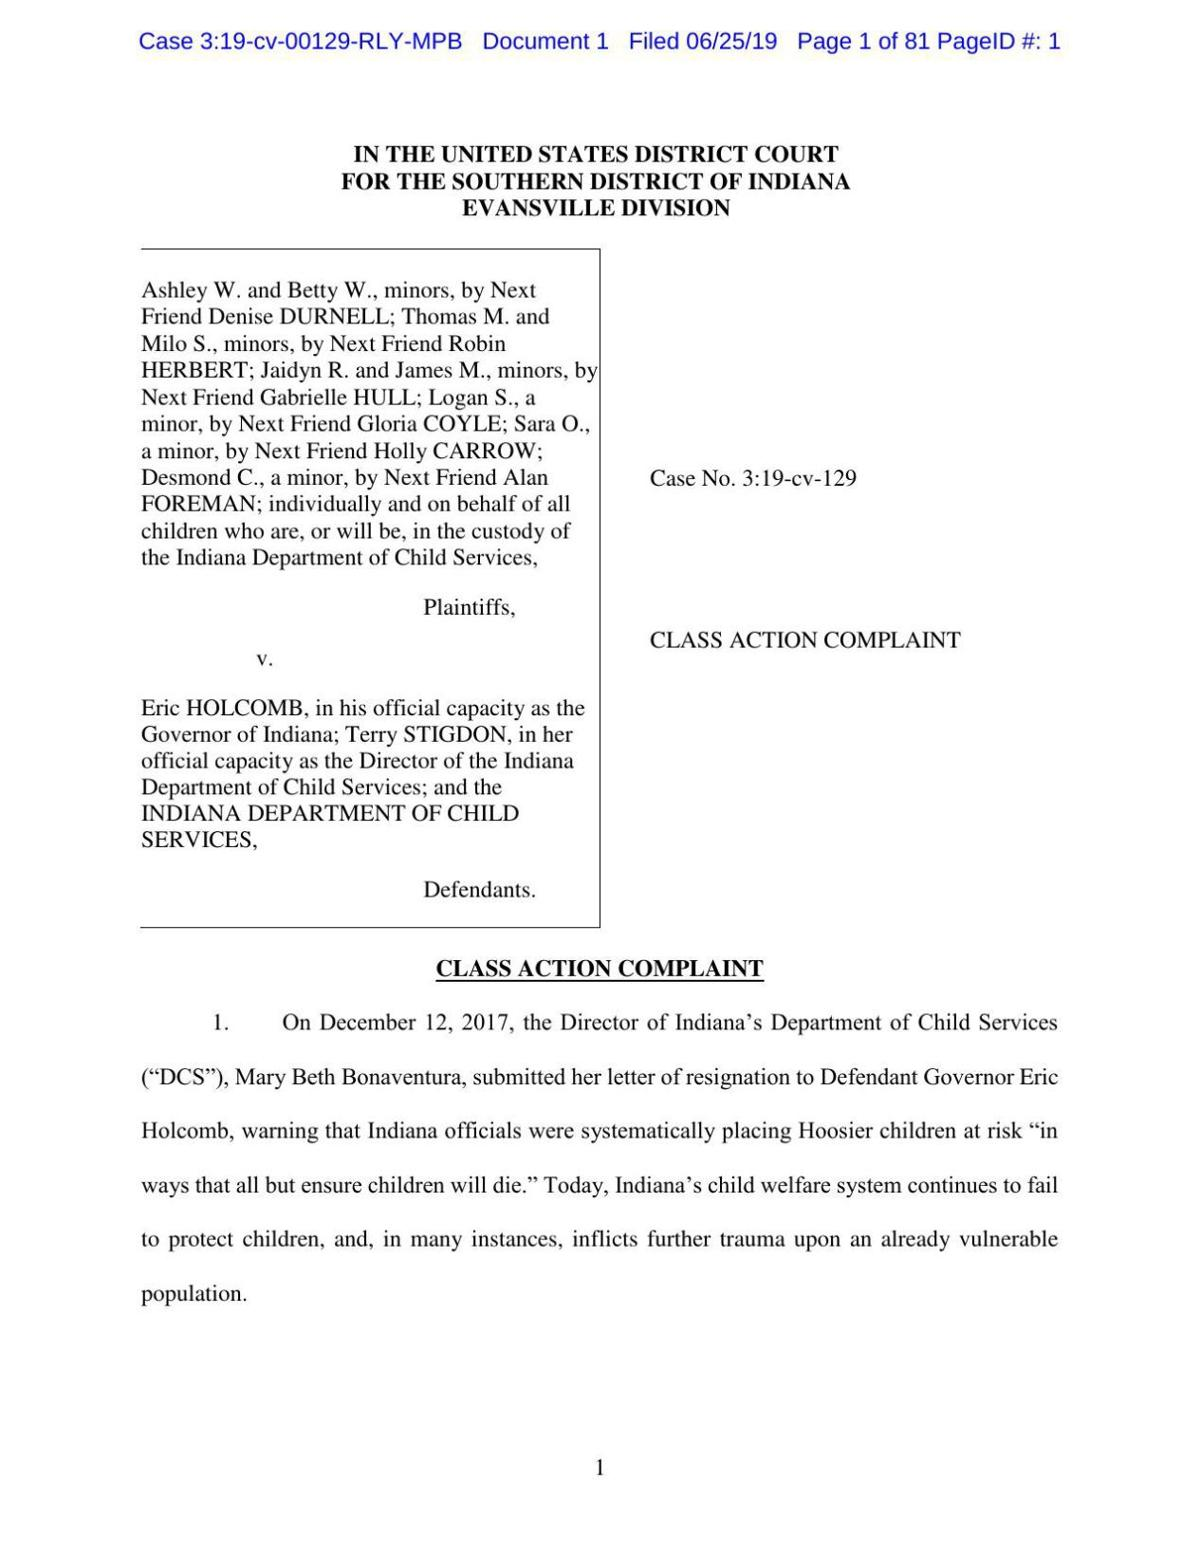 Ashley W. v. Holcomb lawsuit re: Indiana Dept. of Child Services